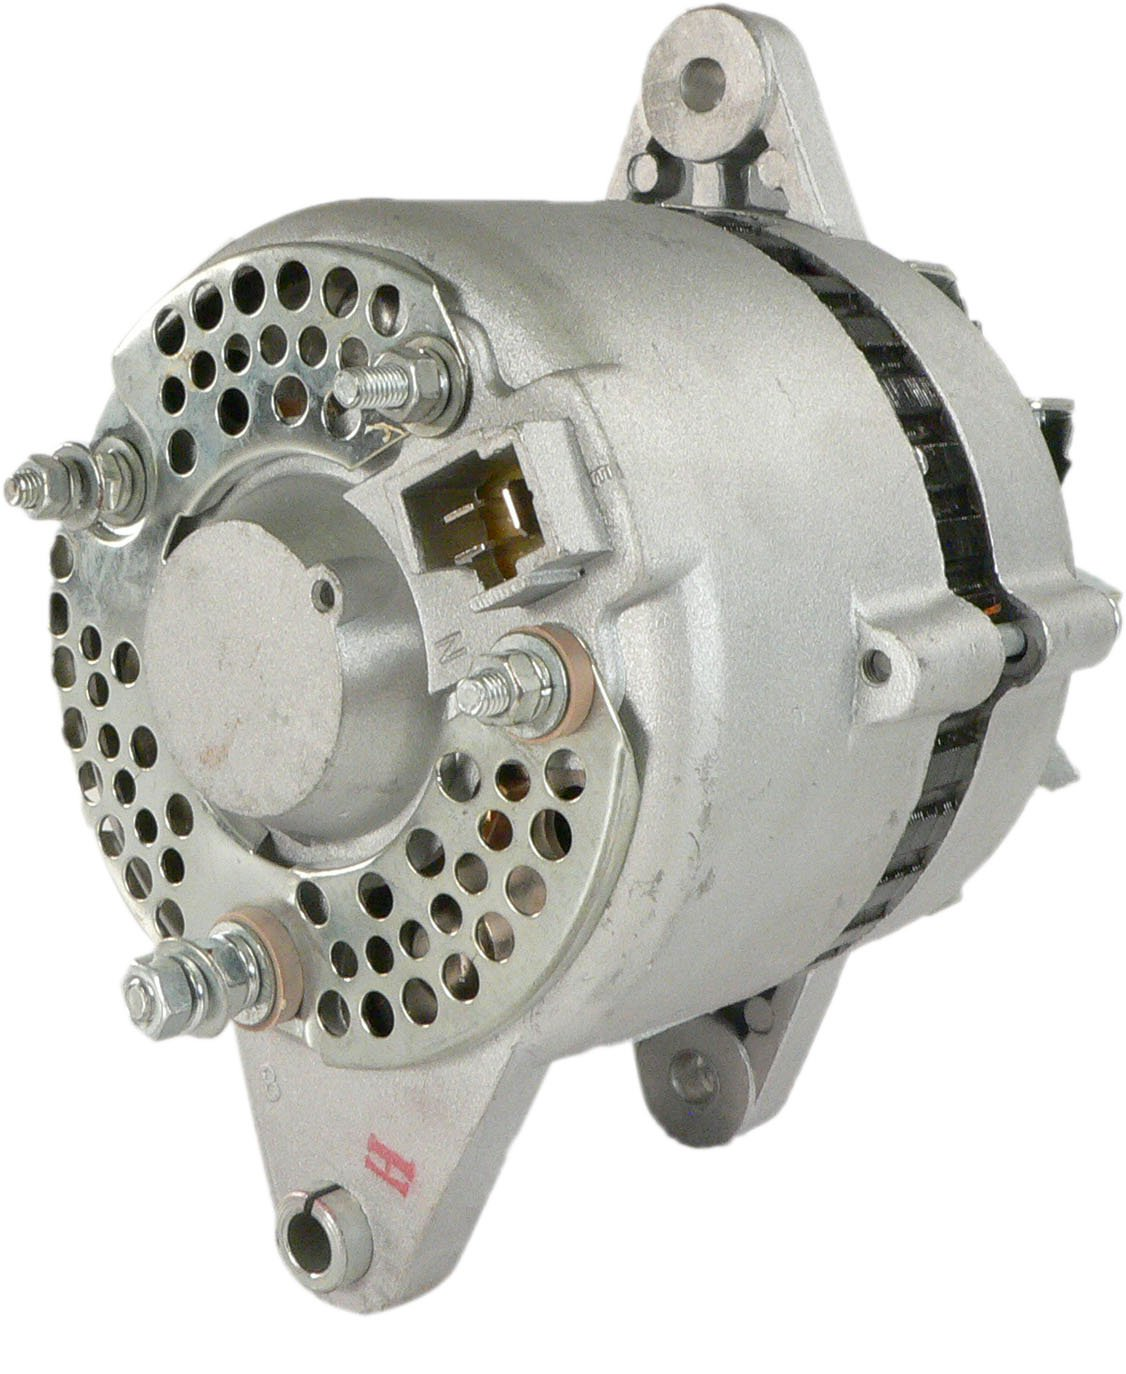 Amazon.com: Db Electrical And0207 Alternator For Kubota, Thomas,L2250  L2250DT L2550 L2550DT L2550F M4950DT,L2250DT L2250F L2550DT L2550DTGST  L2550F L2550GST ...